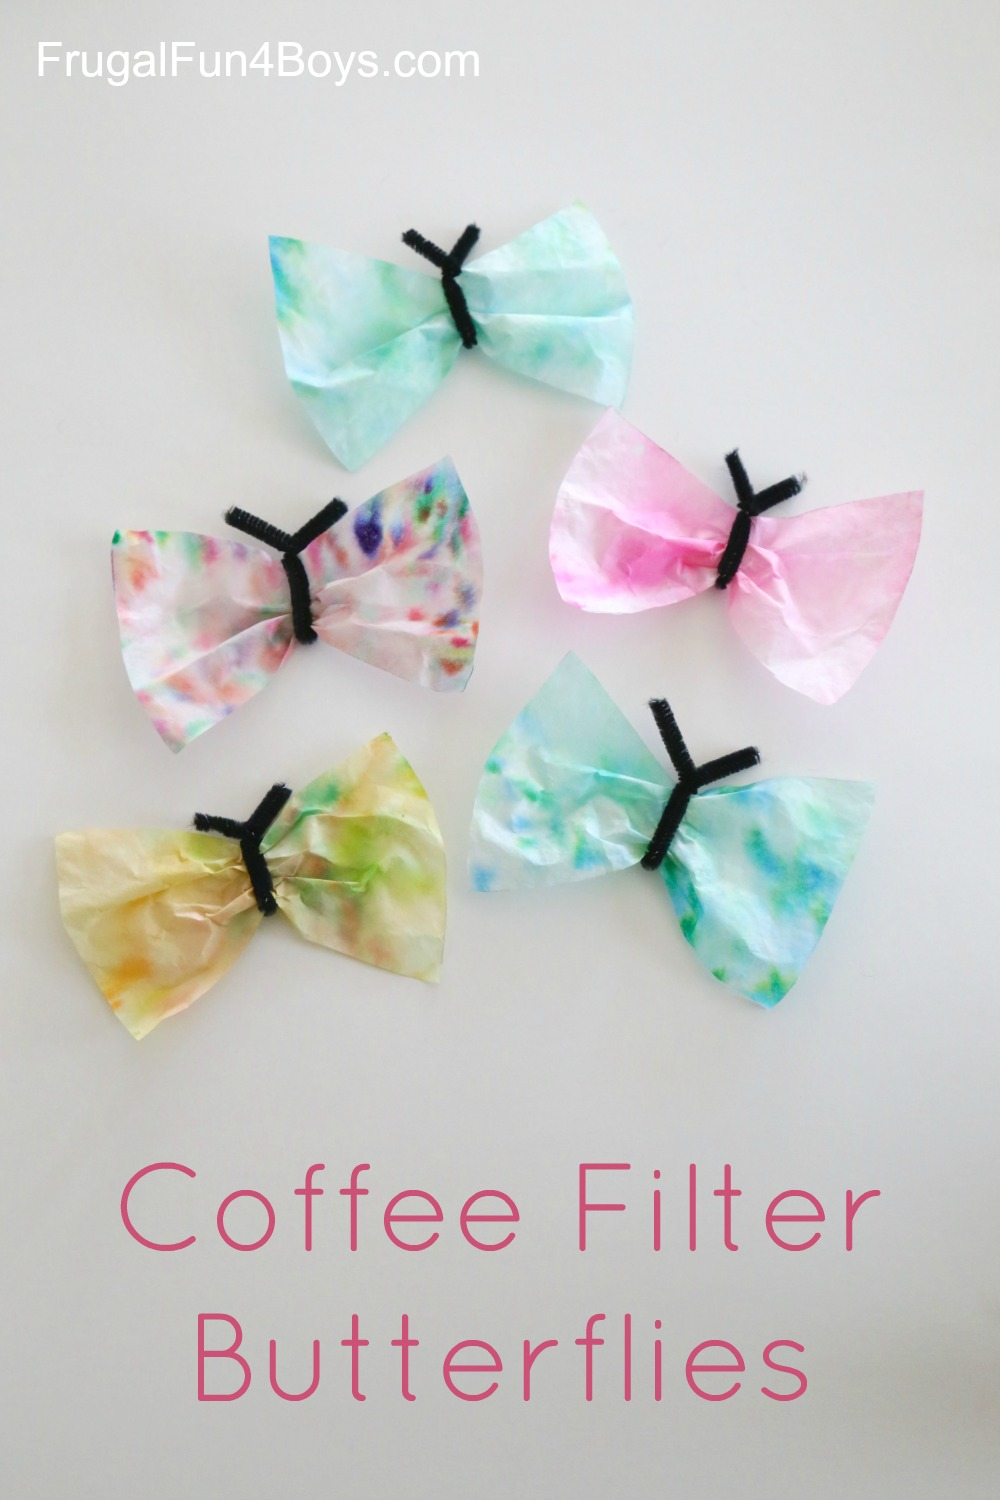 Coffee Filter Butterflies Spring Craft for Kids